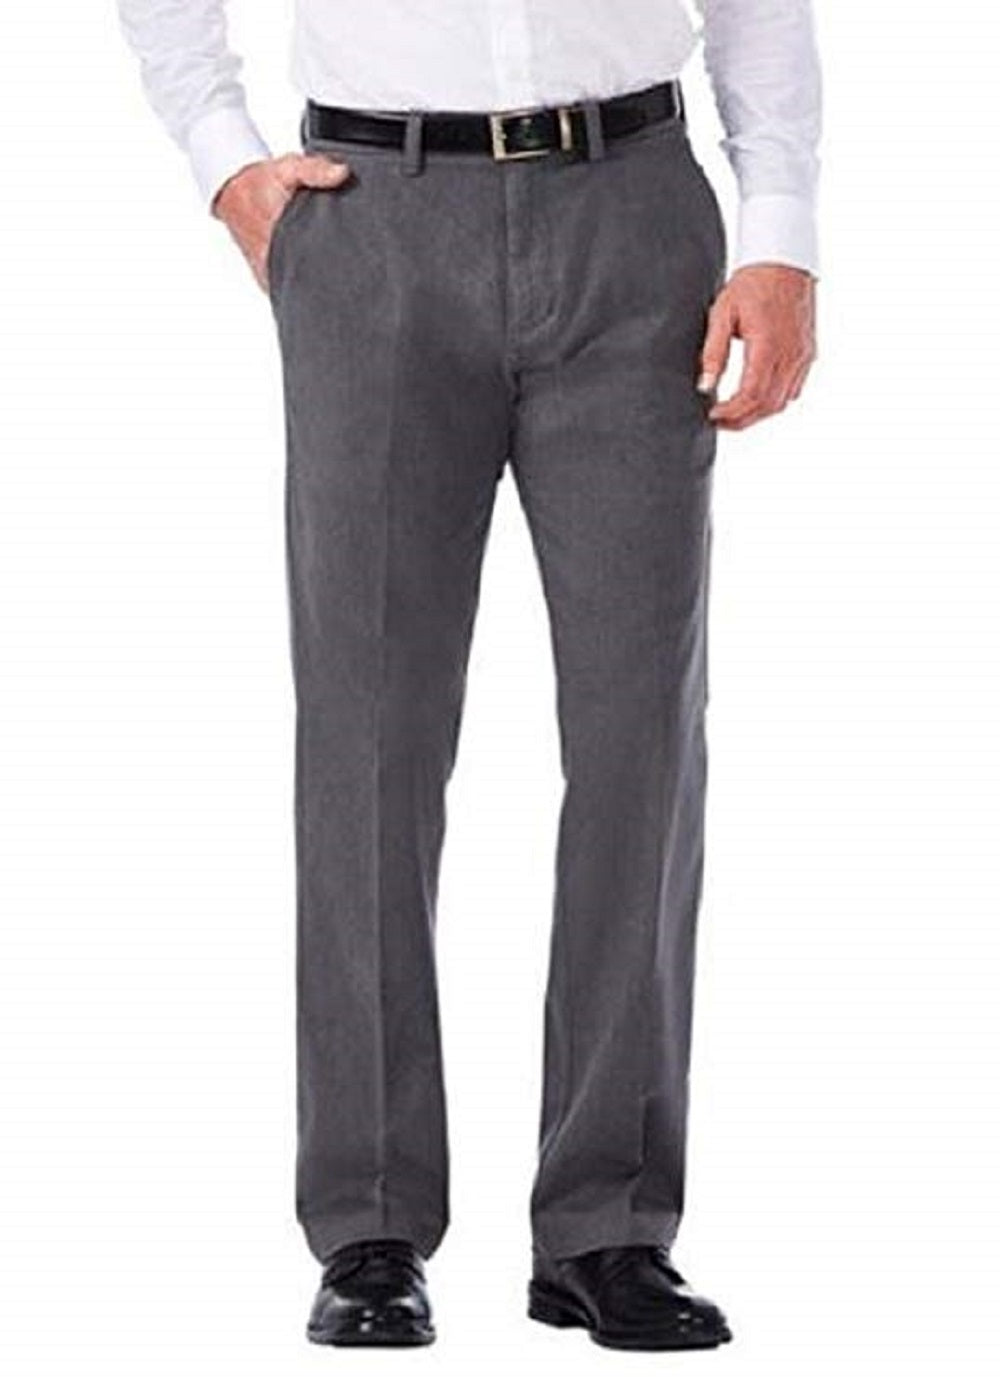 Haggar Clothing Mens SIze 34x34 Stretch Chino Flat Front Pant, Heather Charcoal